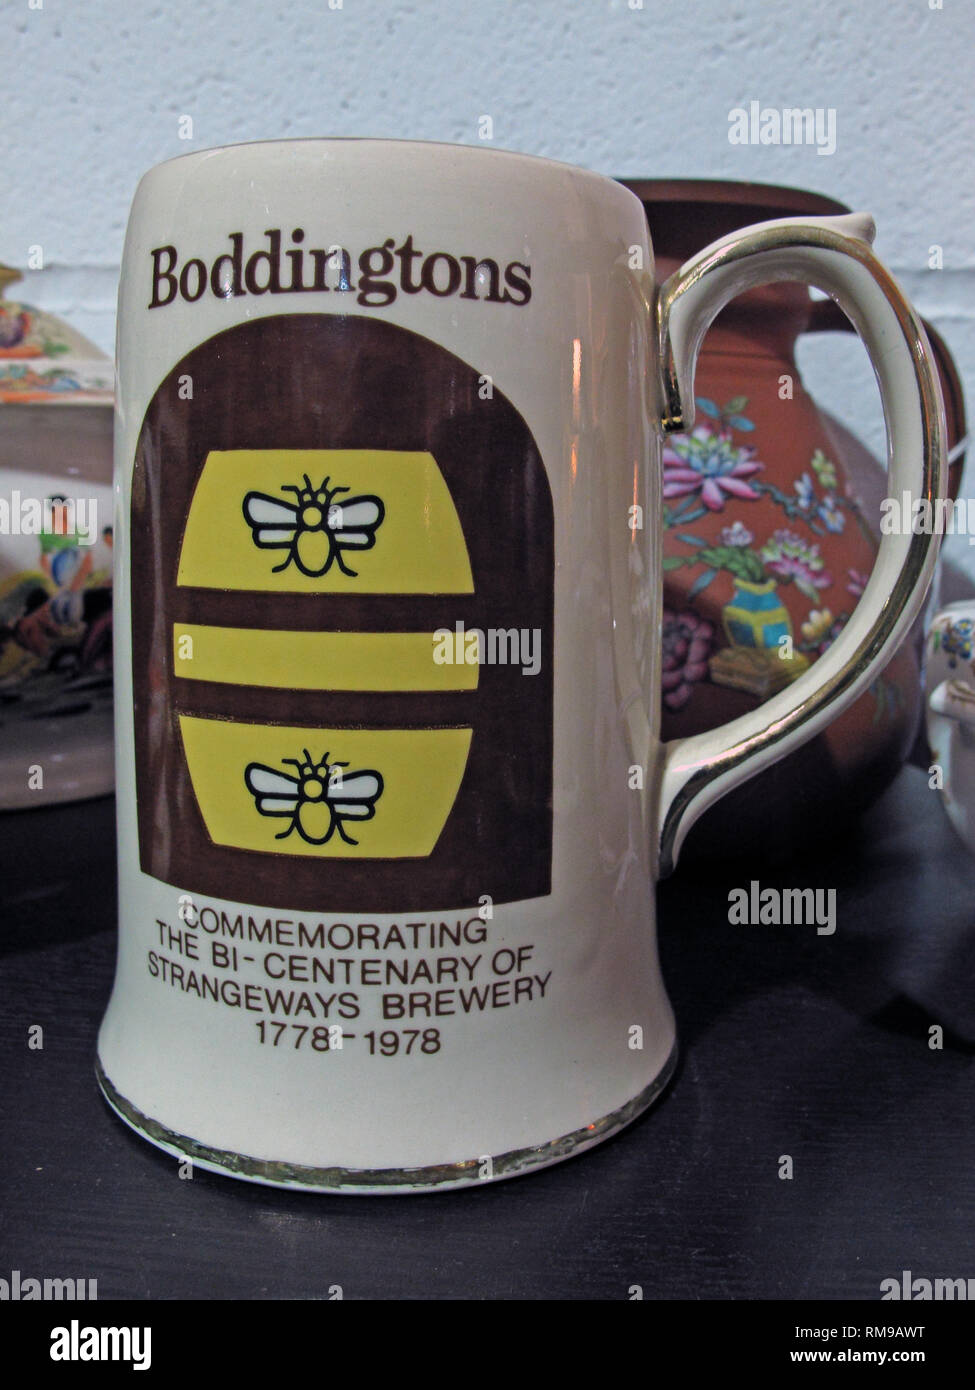 GoTonySmith,HotpixUK,@HotpixUK,England,UK,GB,Boddingtons,ber,ale,brewery,Boddingtons bitter,bitter,bee,Manchester,Strangeways,BiCentenary,brown,yellow,logo,two bees,2 bees,Boddies,Cream of,regional,brewer,pubs,bars,city,pot,mug,cup,ceramic,clay,special,promotion,North West England,Lowe Howard-Spink